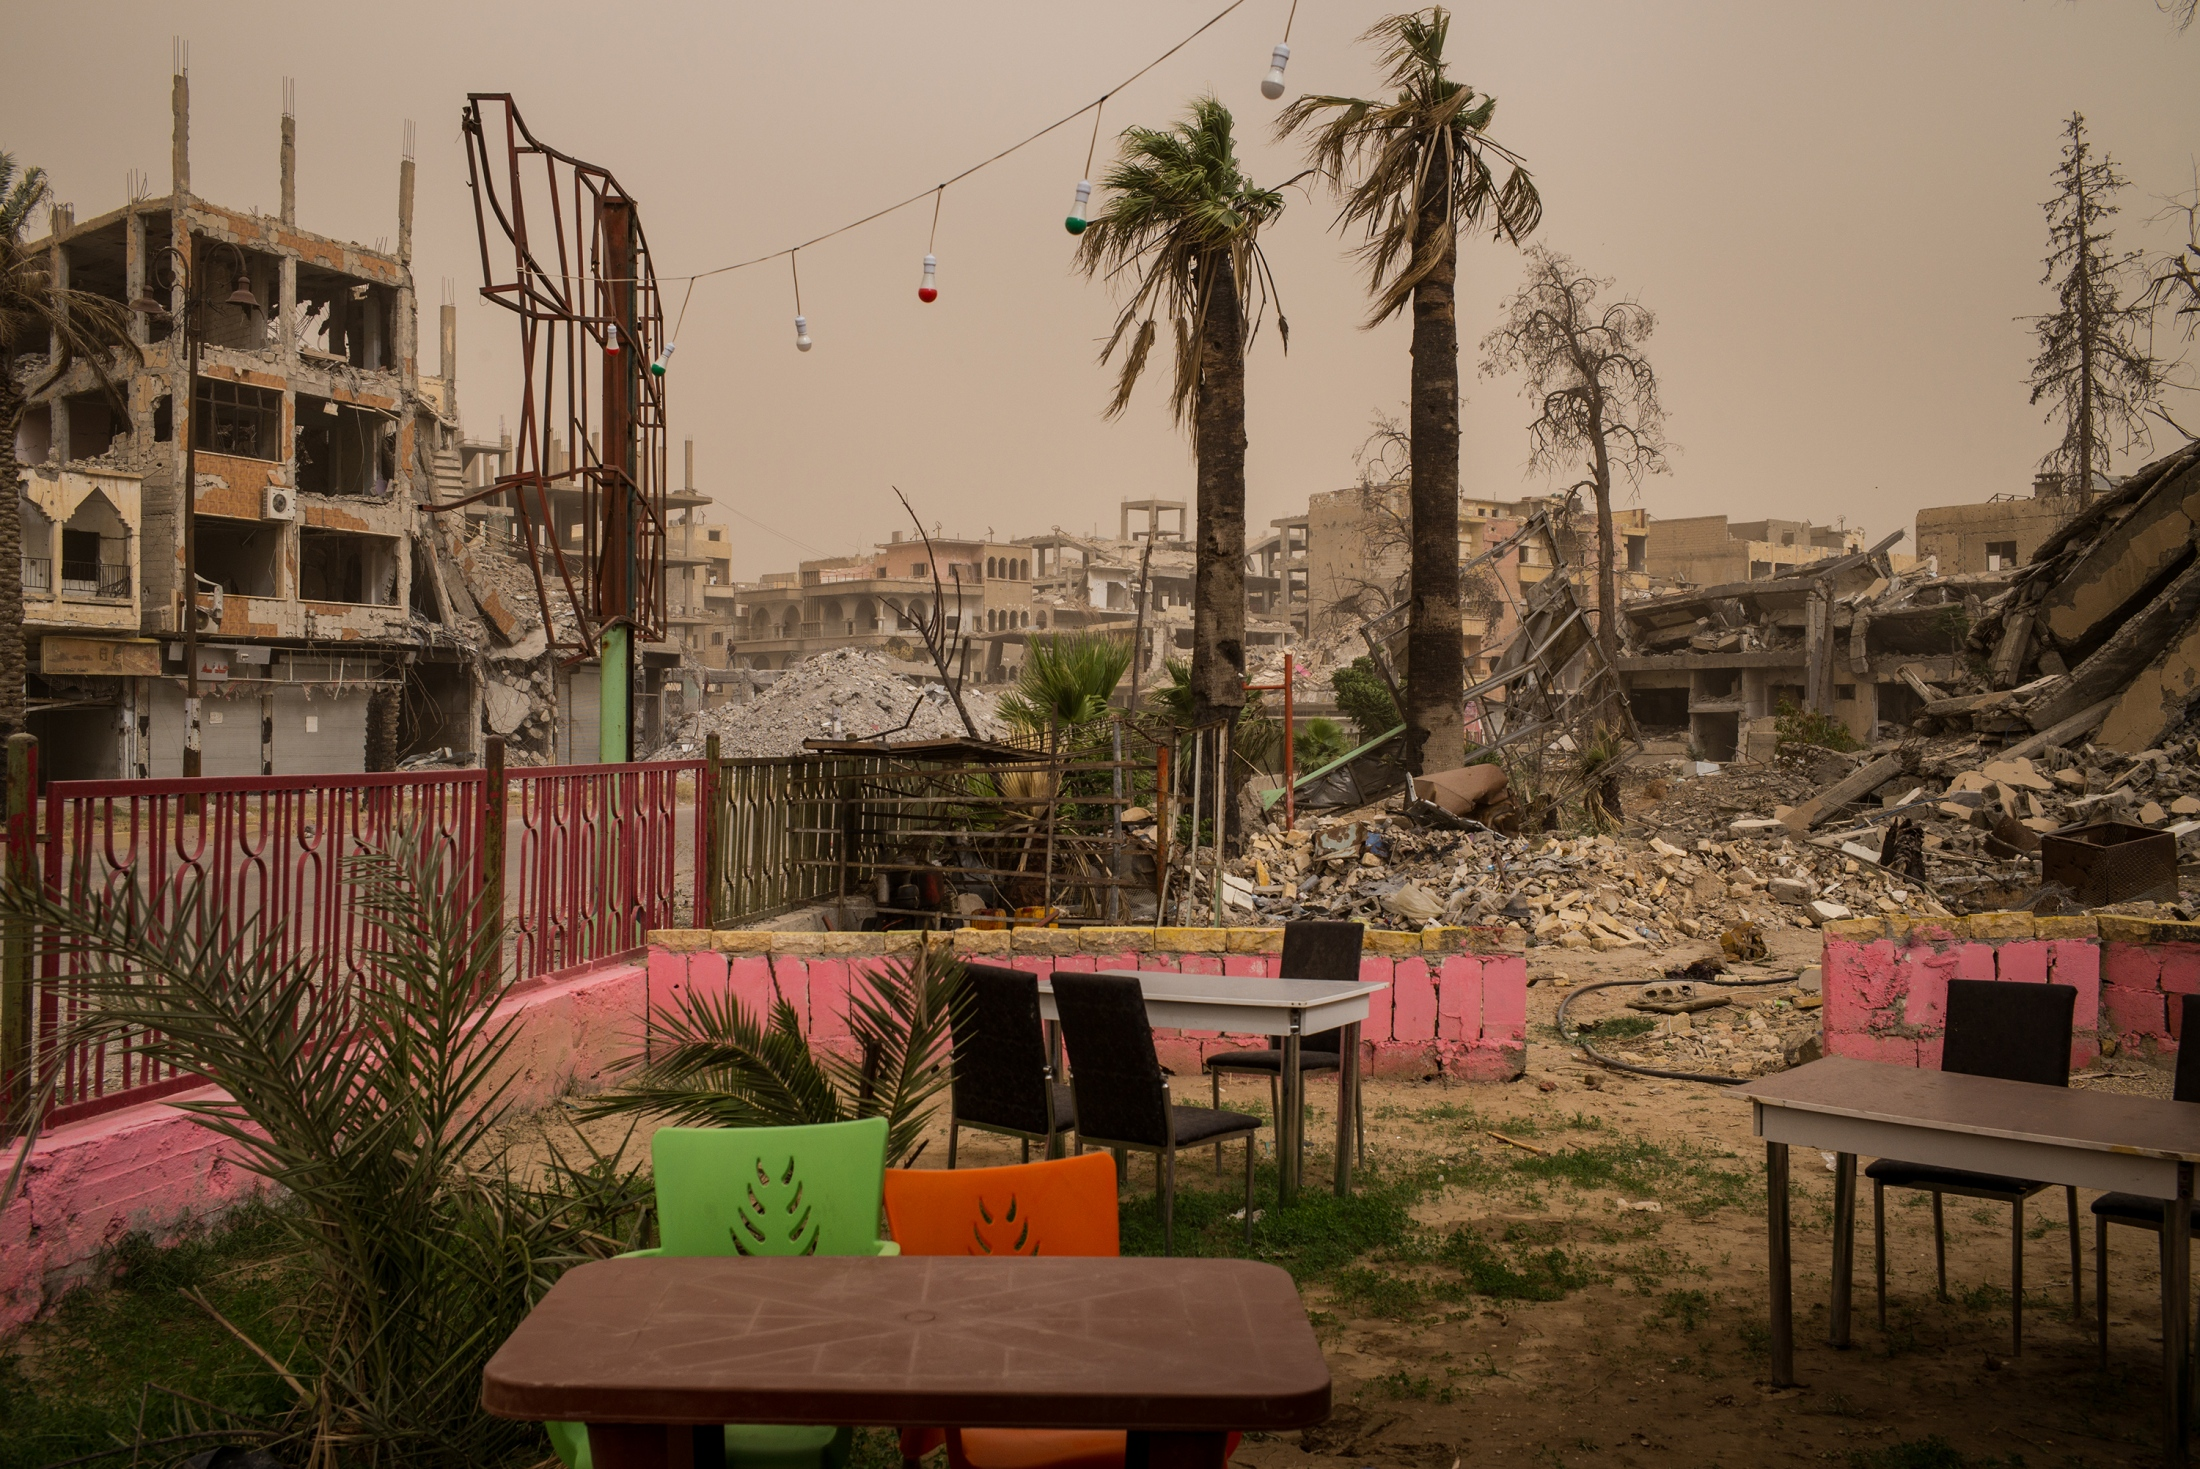 A newly opened cafe stands in contrast to the backdrop of a destroyed city in Naim Square, Raqqa, Syria, on Thursday, June 28, 2018. Naim Square  was a hub of social life before it became a symbol of ISIS's brutality, where the extremist group would carry out public executions.